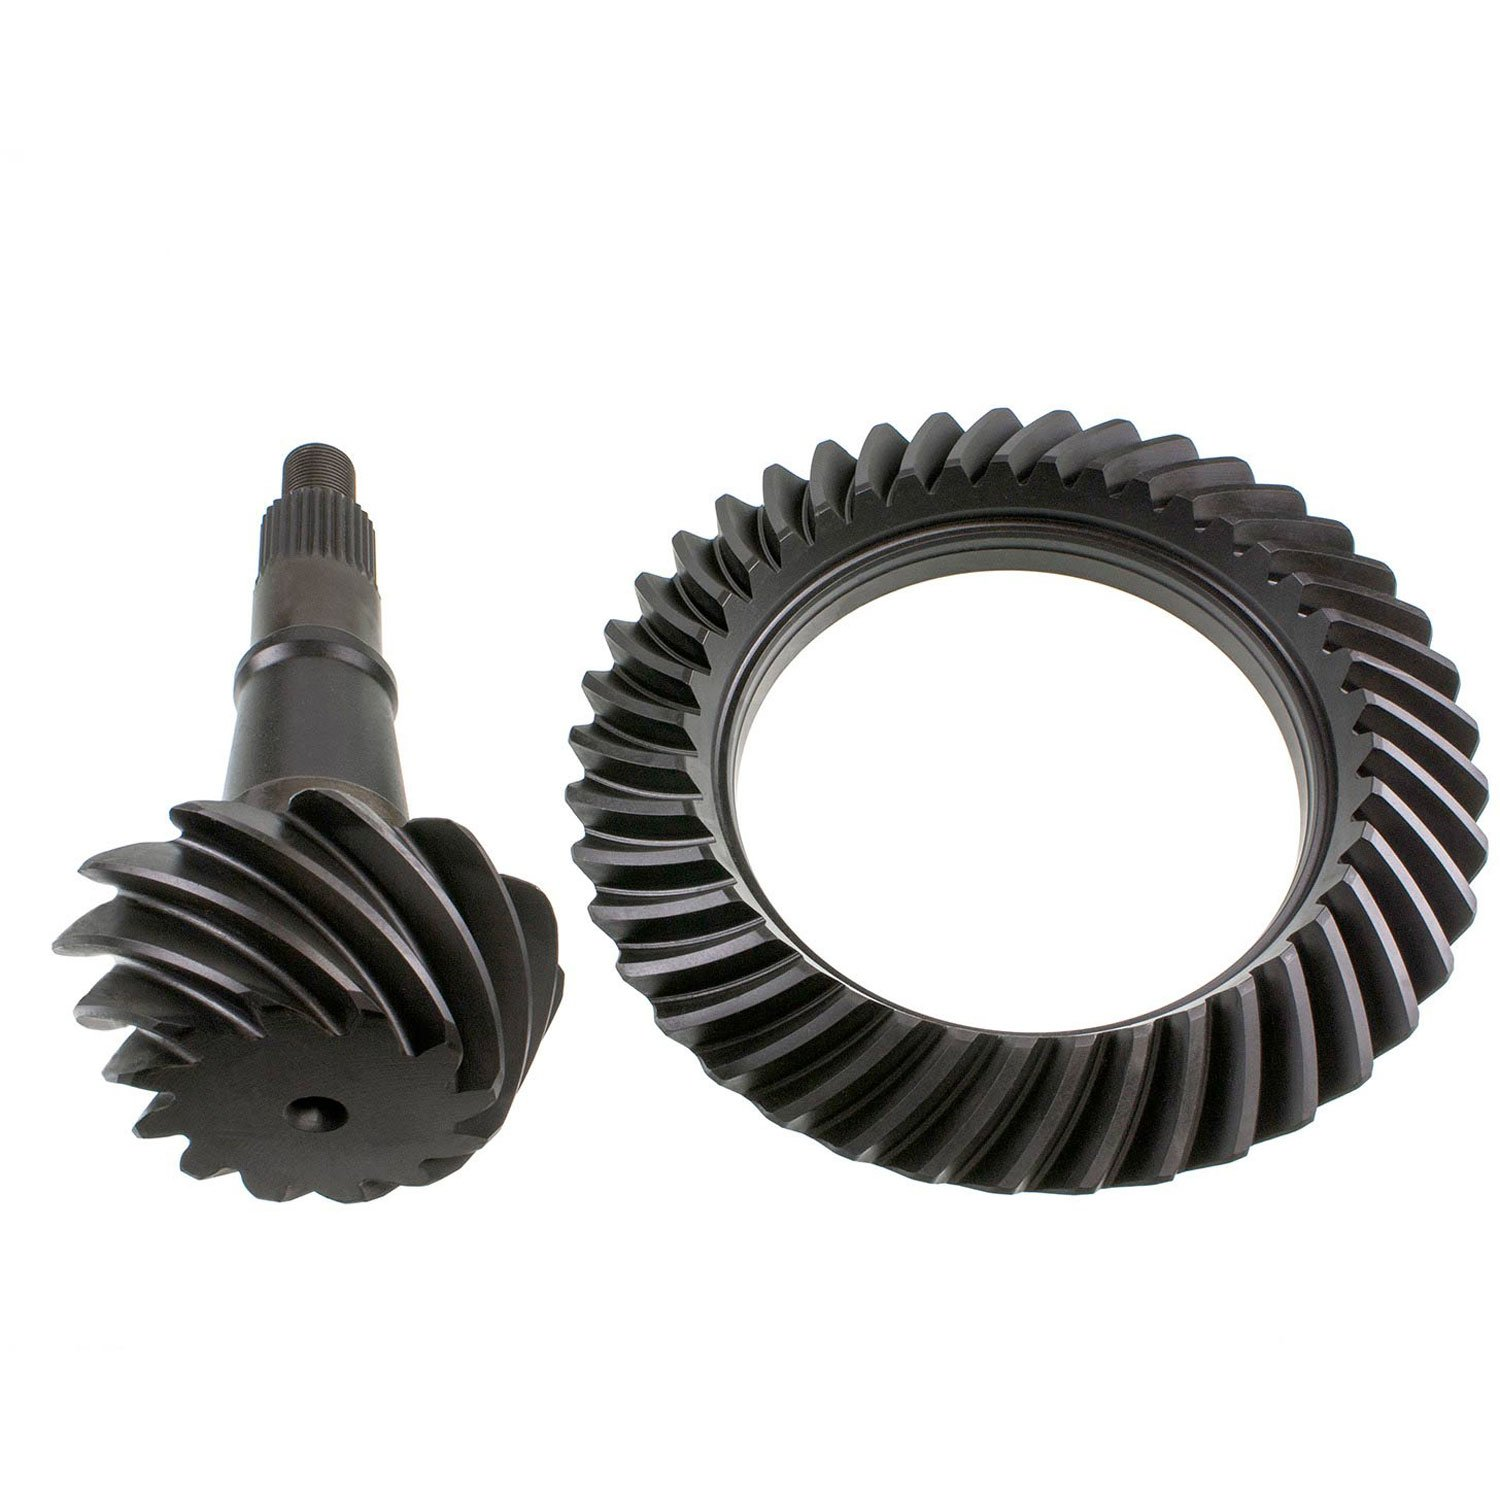 Motive Gear GM9.5-342 Ring and Pinion (GM 9.5'' Style, 3.42 Ratio) by Motive Gear (Image #3)